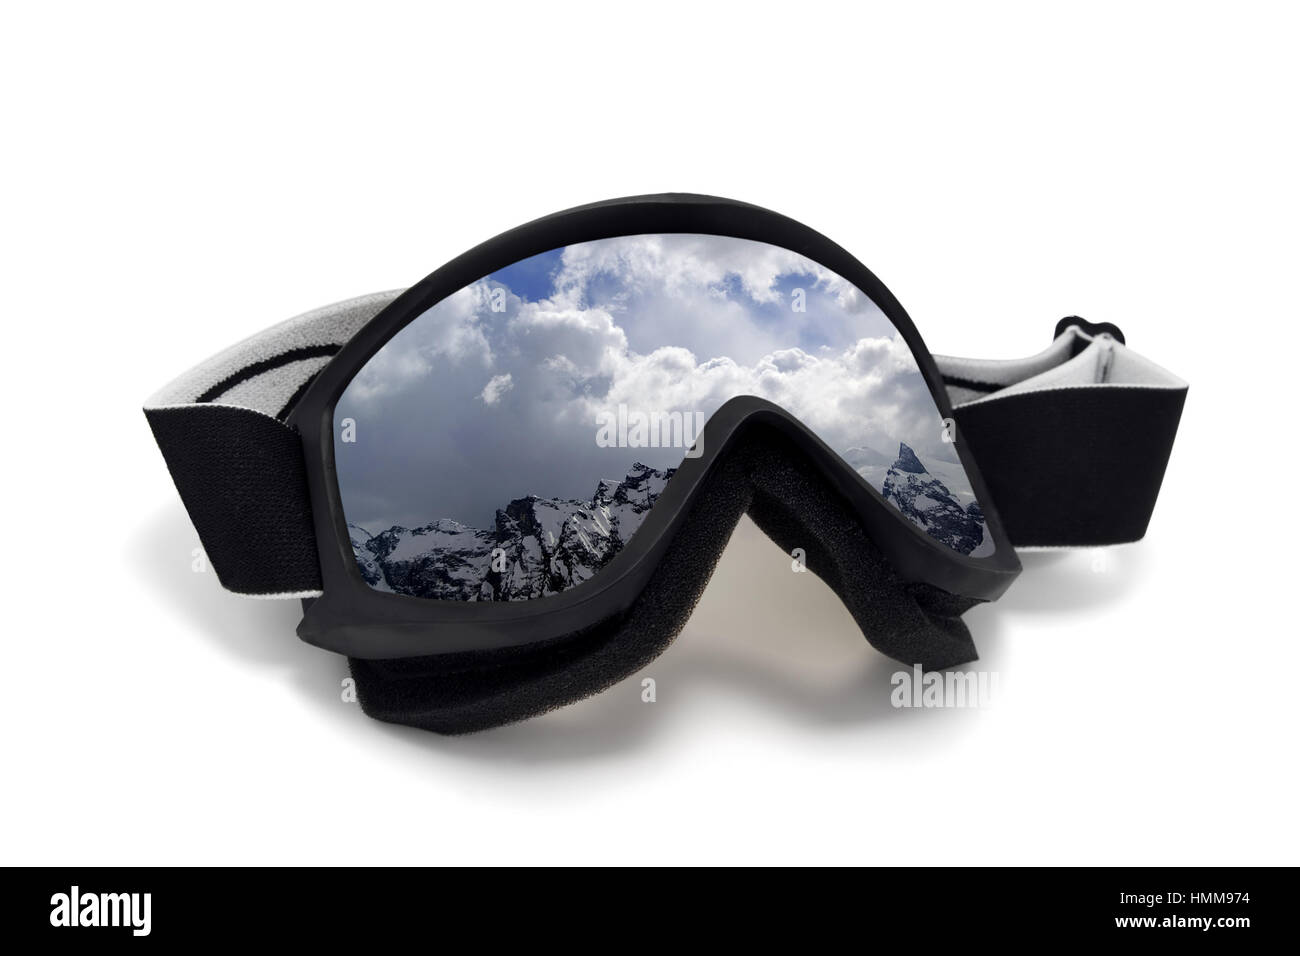 Ski goggles with reflection of winter snow mountains. Isolated on white background - Stock Image